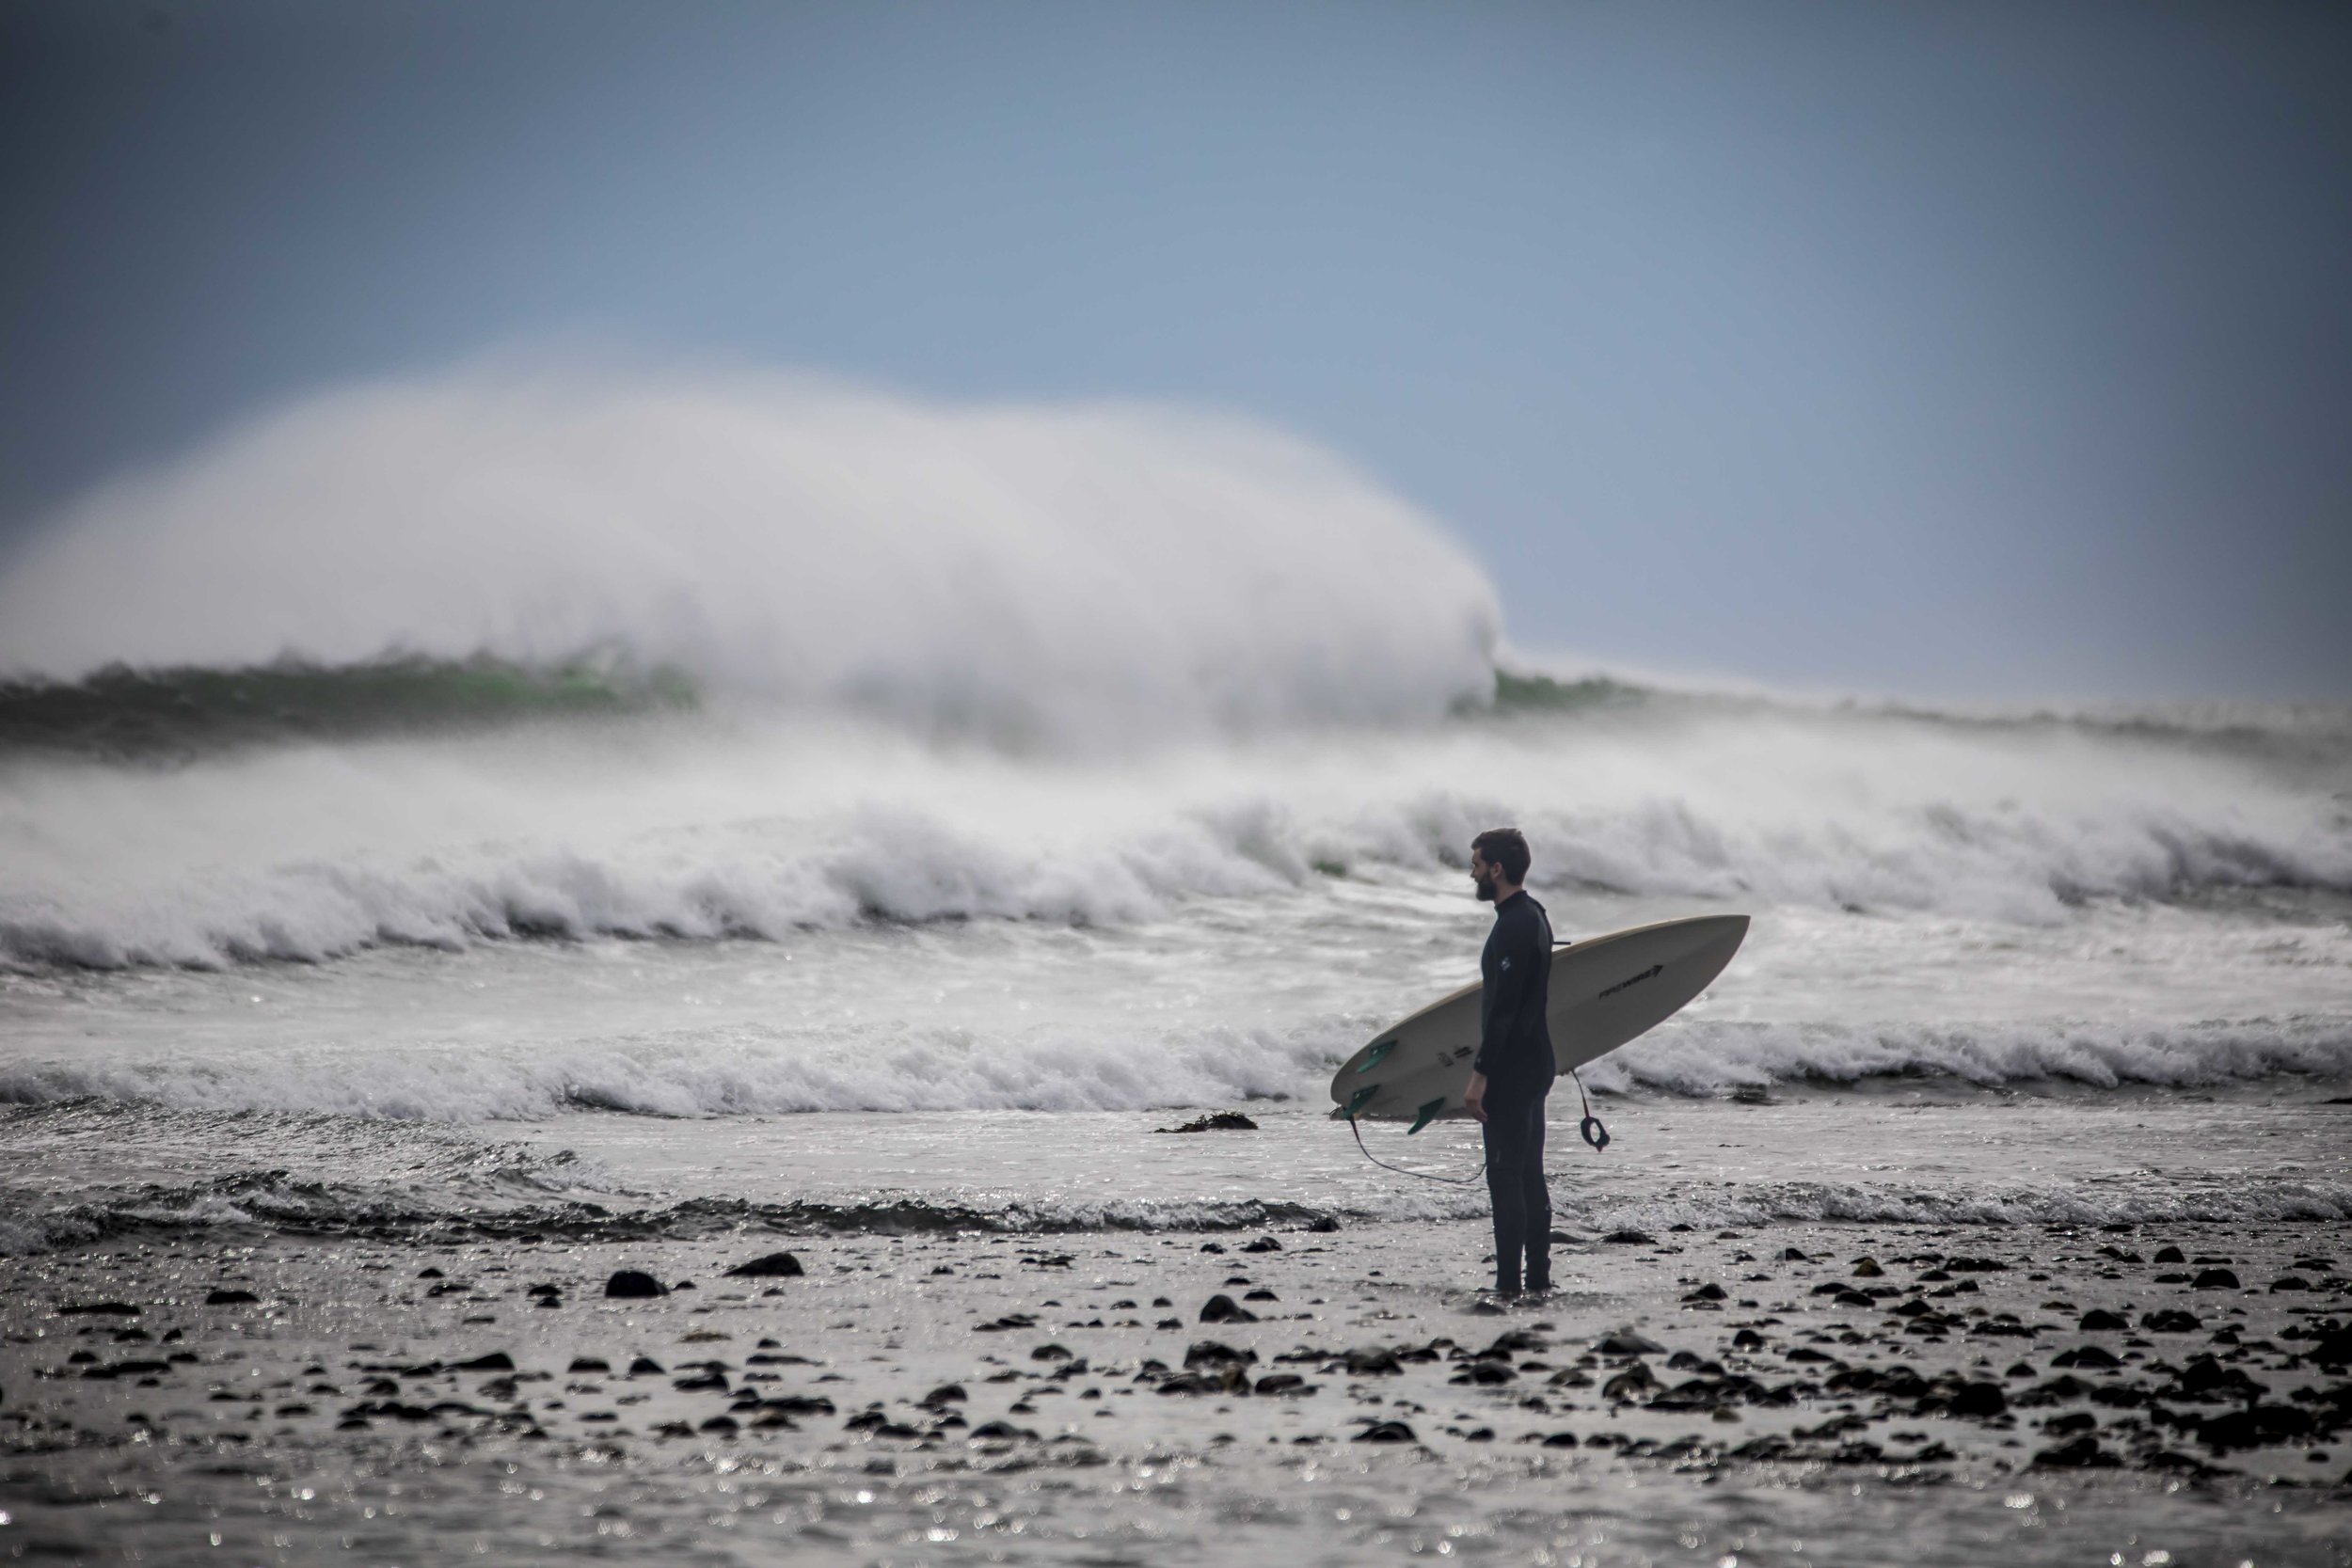 A surfer sizes up the massive swells before heading into the lineup during a September surge at Deep Hole in Matunuck, R.I.